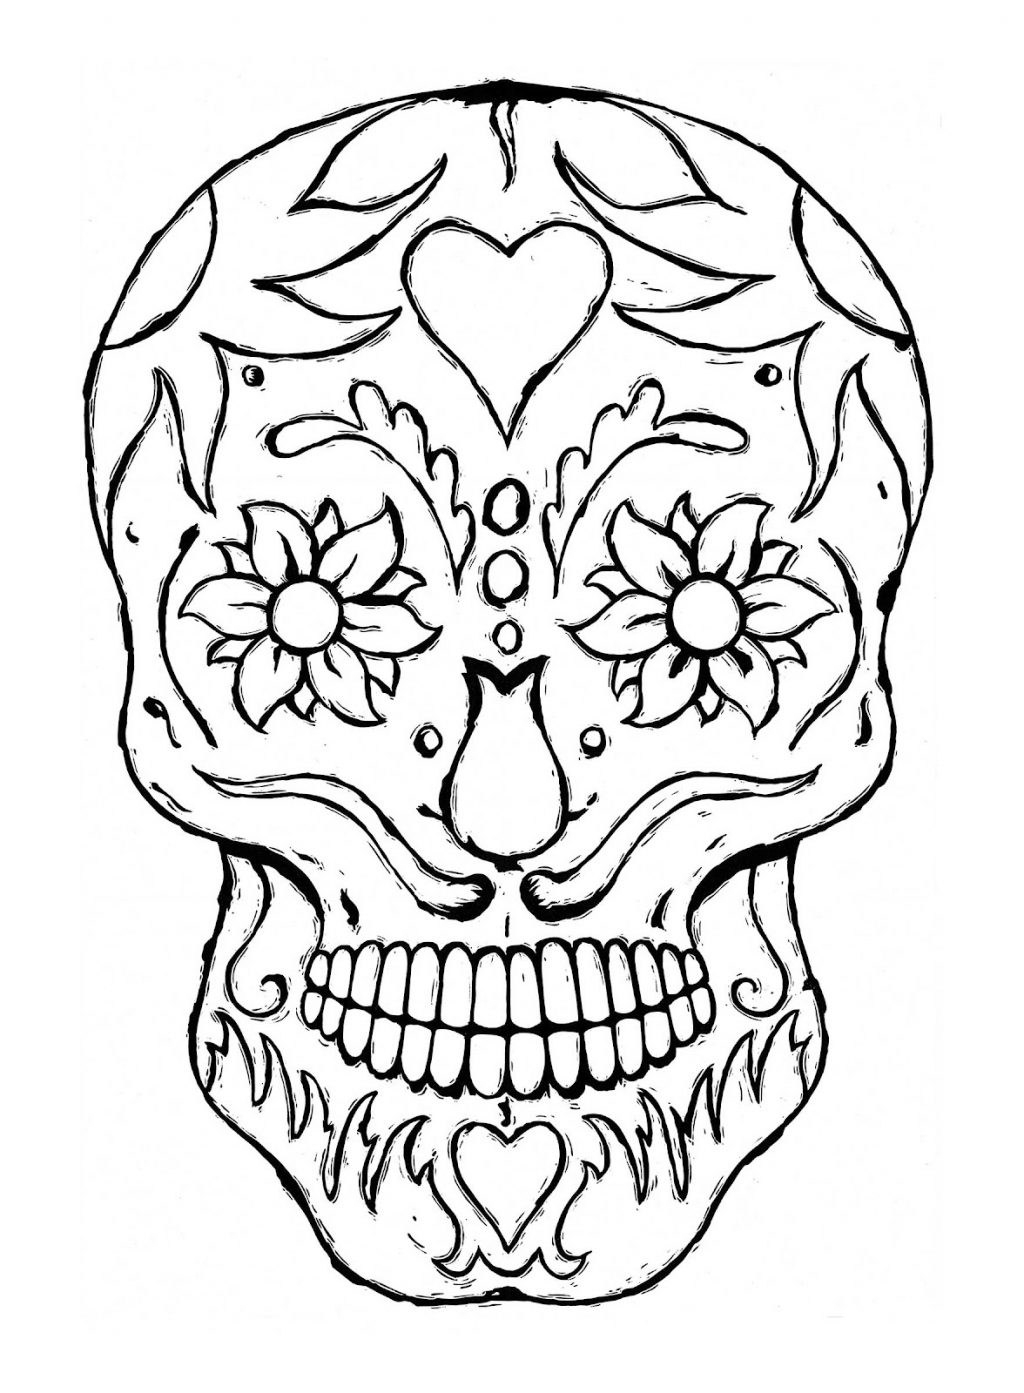 Free Scary Halloween Coloring Pages Coloring Books Scary Halloween Coloring Pages Printables Free